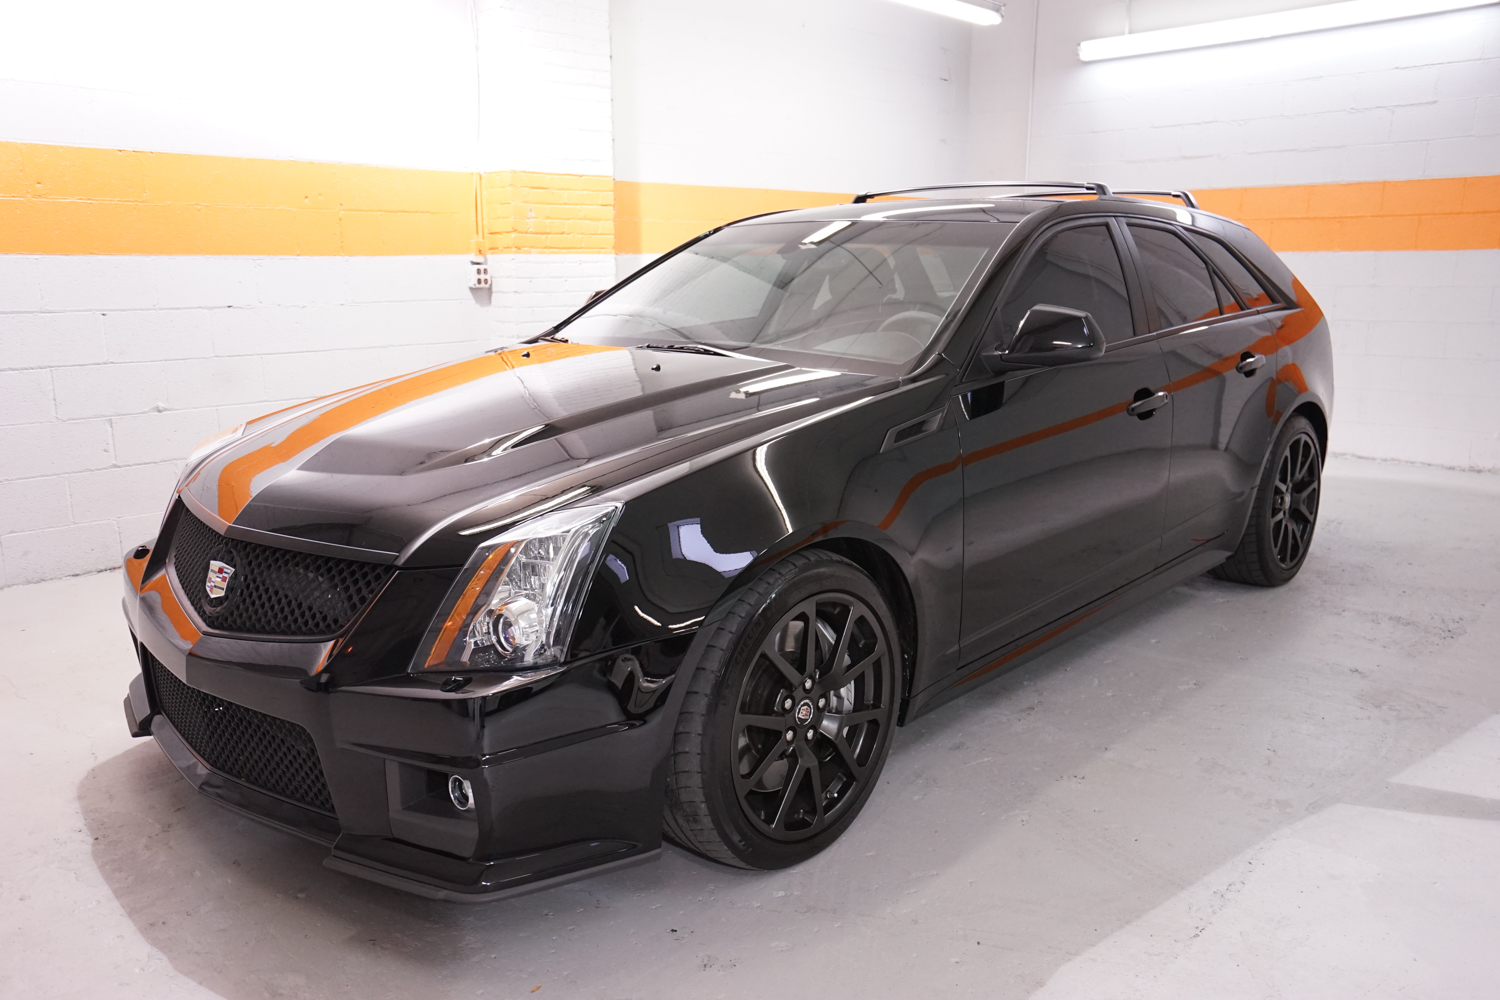 Cadillac Cts V Wagon For Sale >> Motorcar Solutions Sold The Unicorn 2014 Cadillac Cts